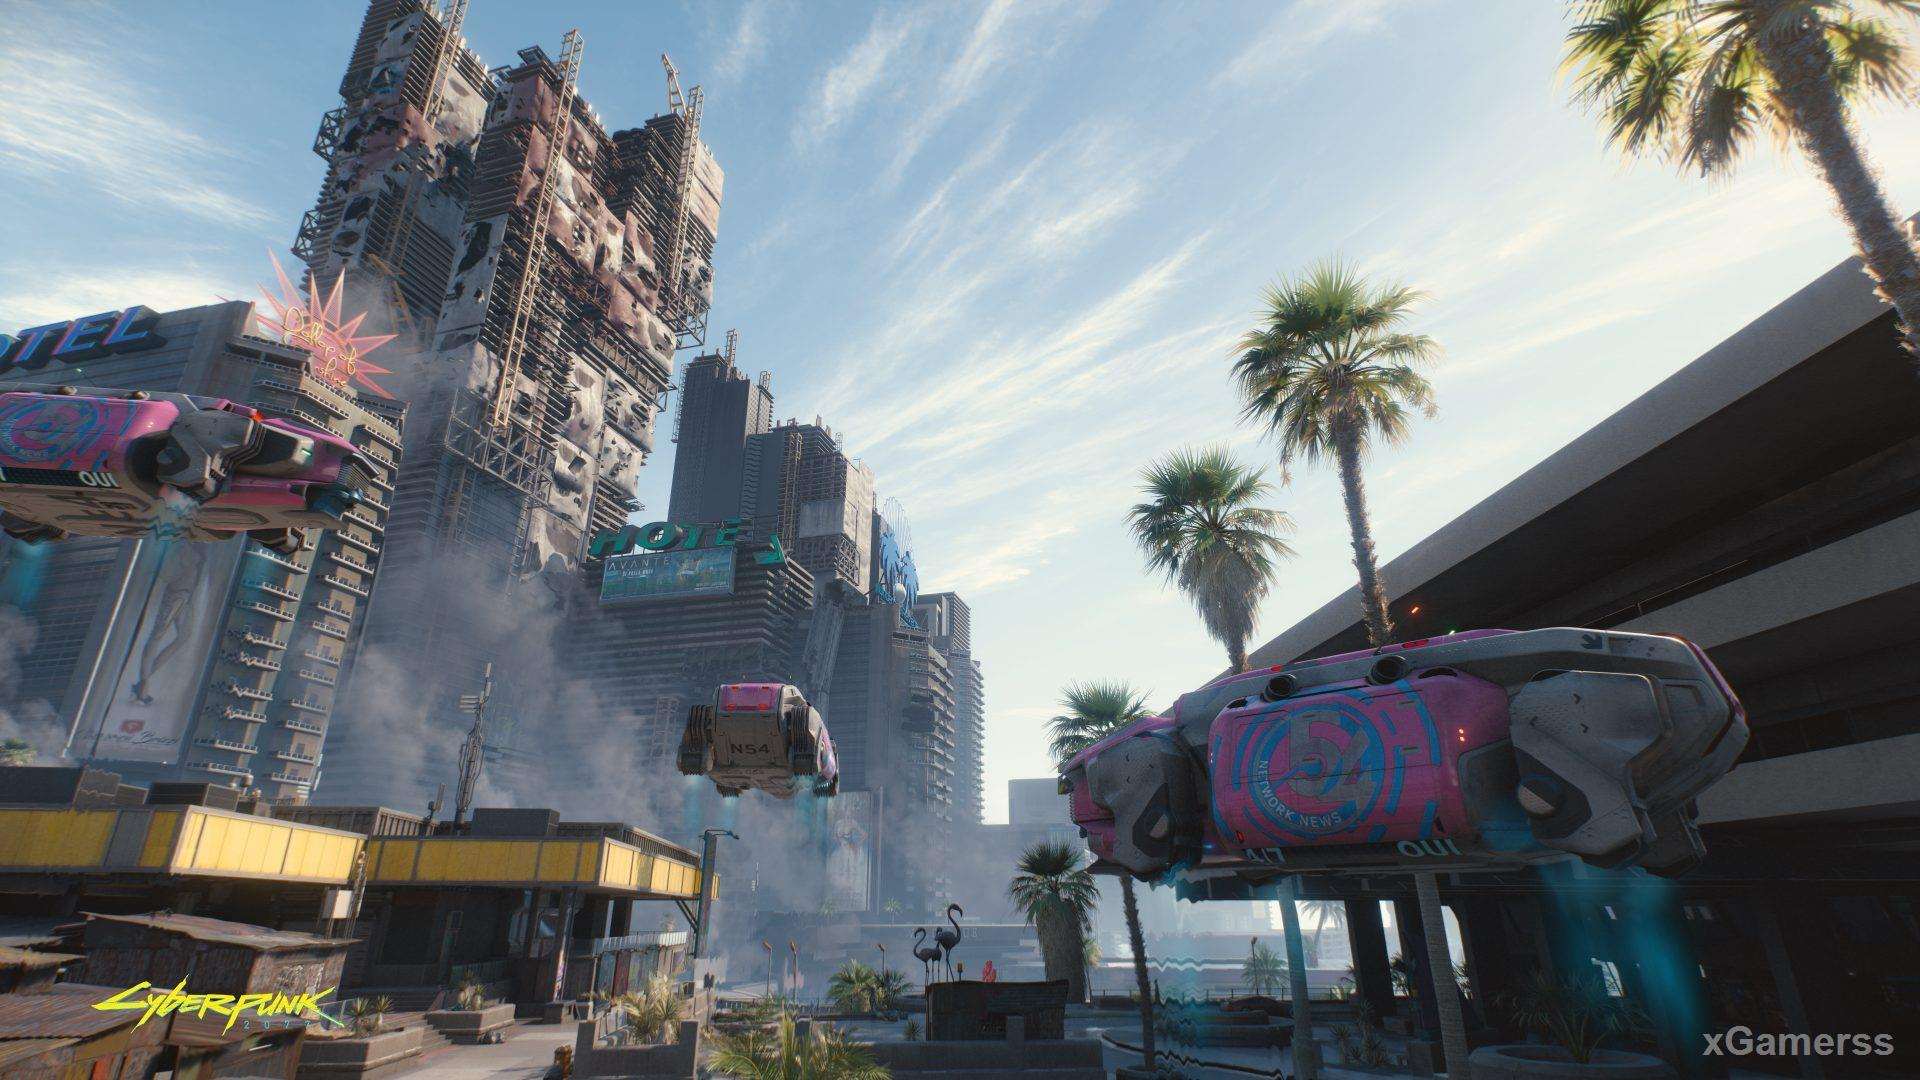 The city of Night City, where the events of Cyberpunk 2077 will unfold